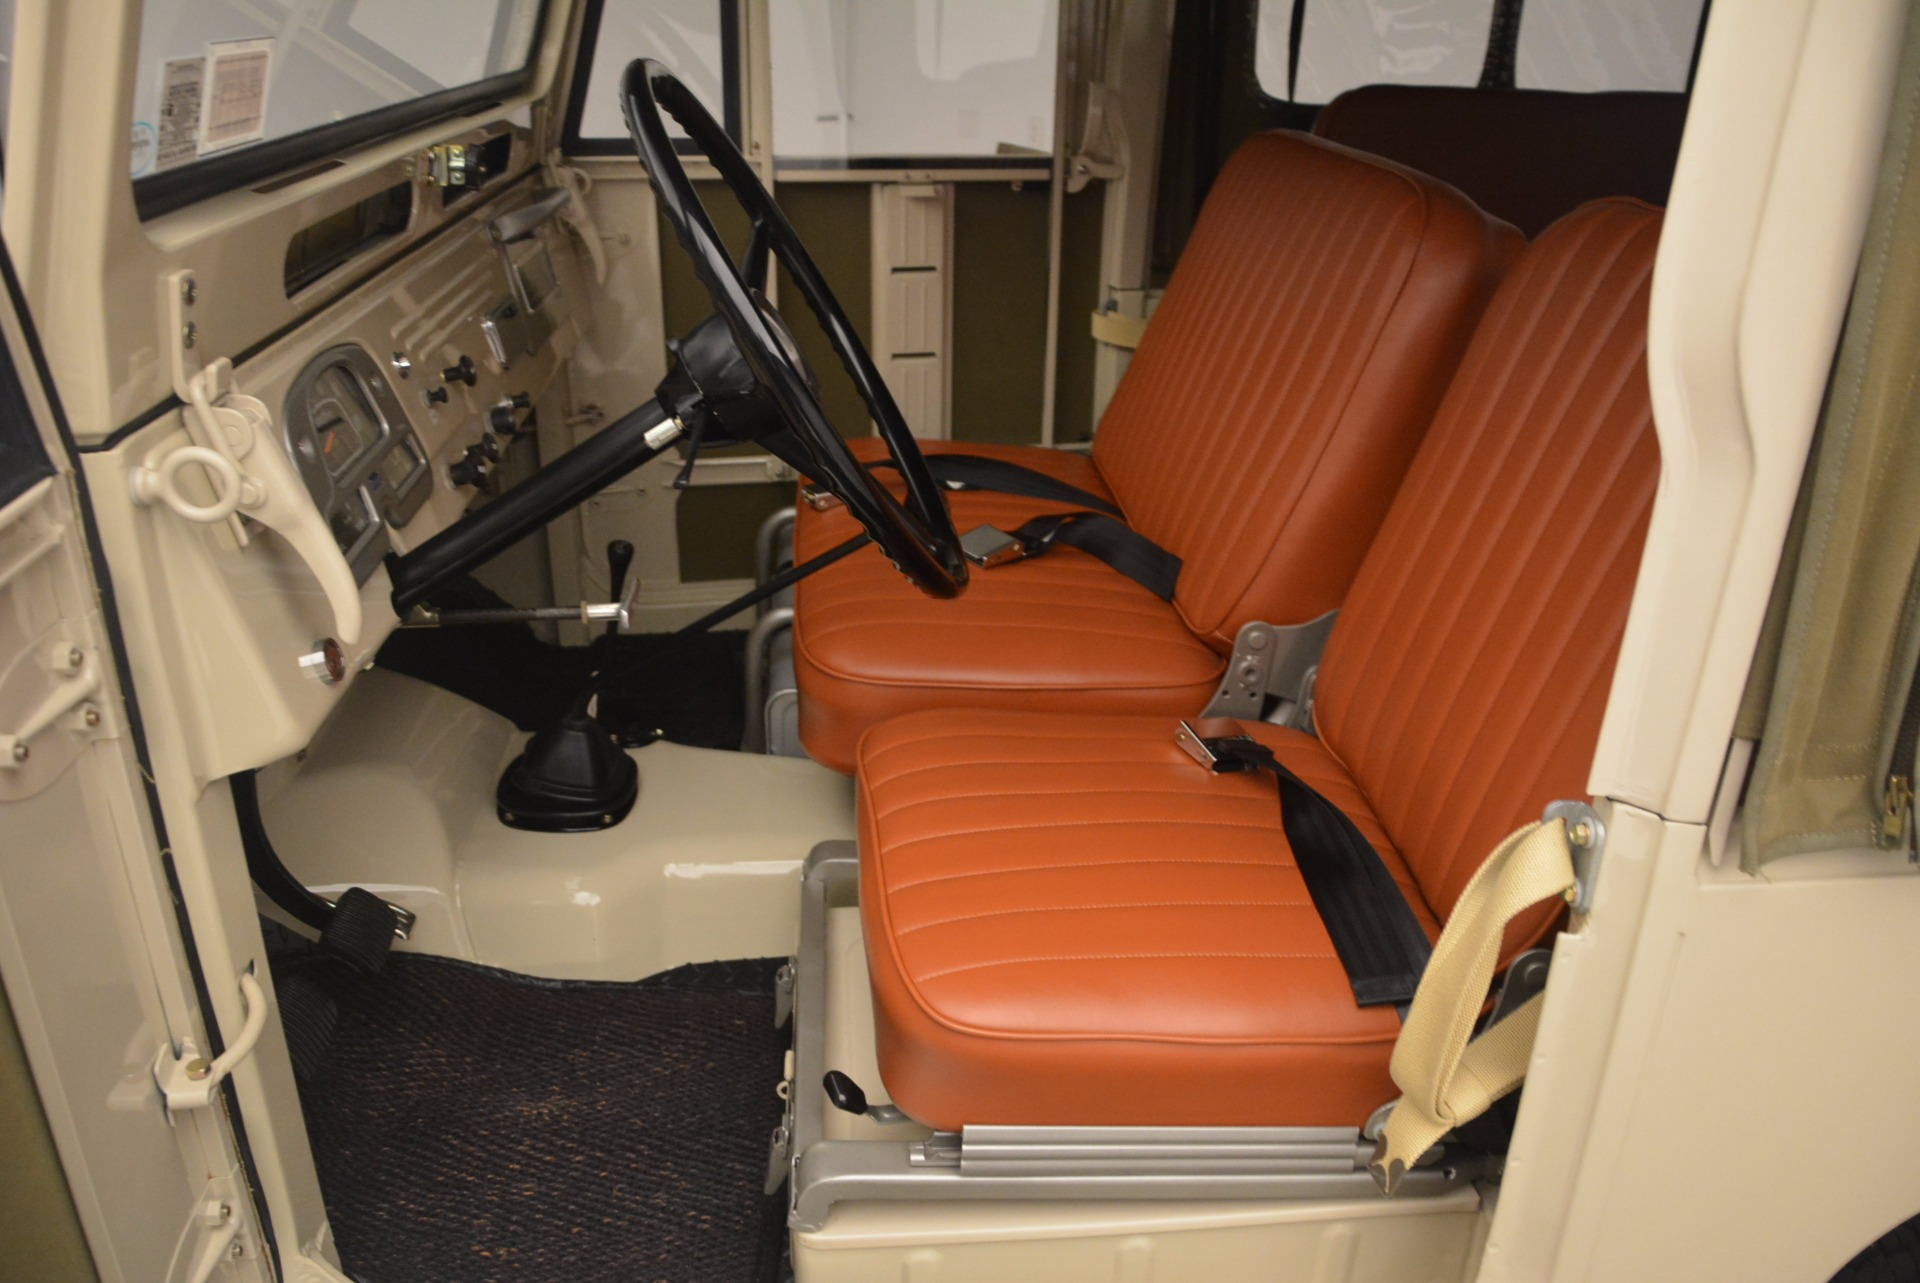 Used 1966 Toyota FJ40 Land Cruiser Land Cruiser For Sale 0 In Greenwich, CT